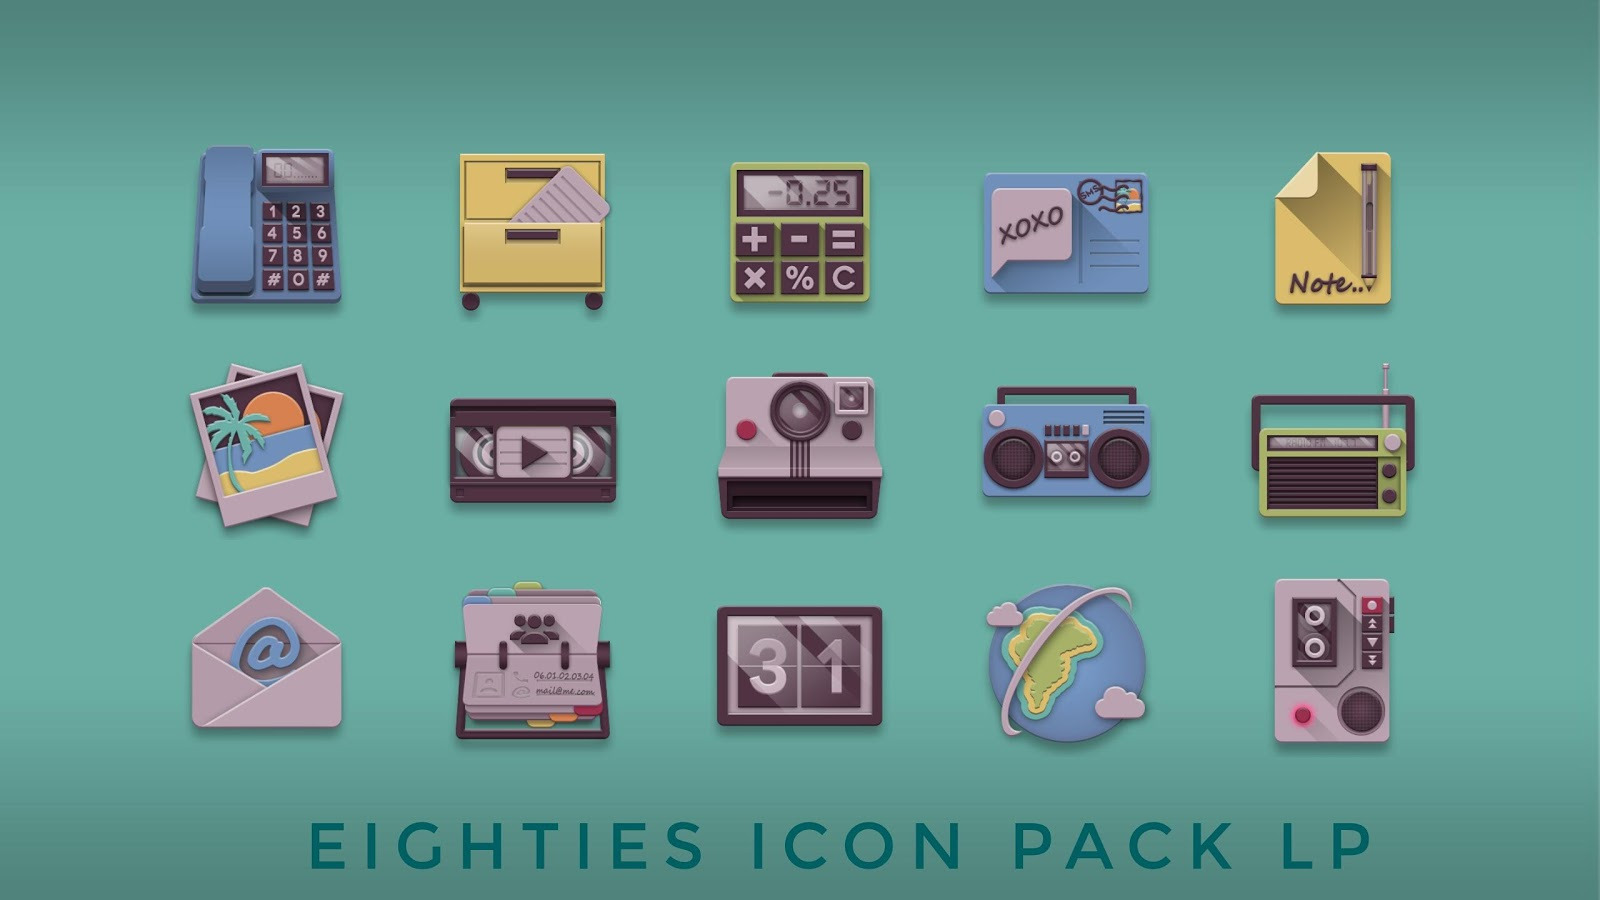 Eighties retro fun icon pack Screenshot 0